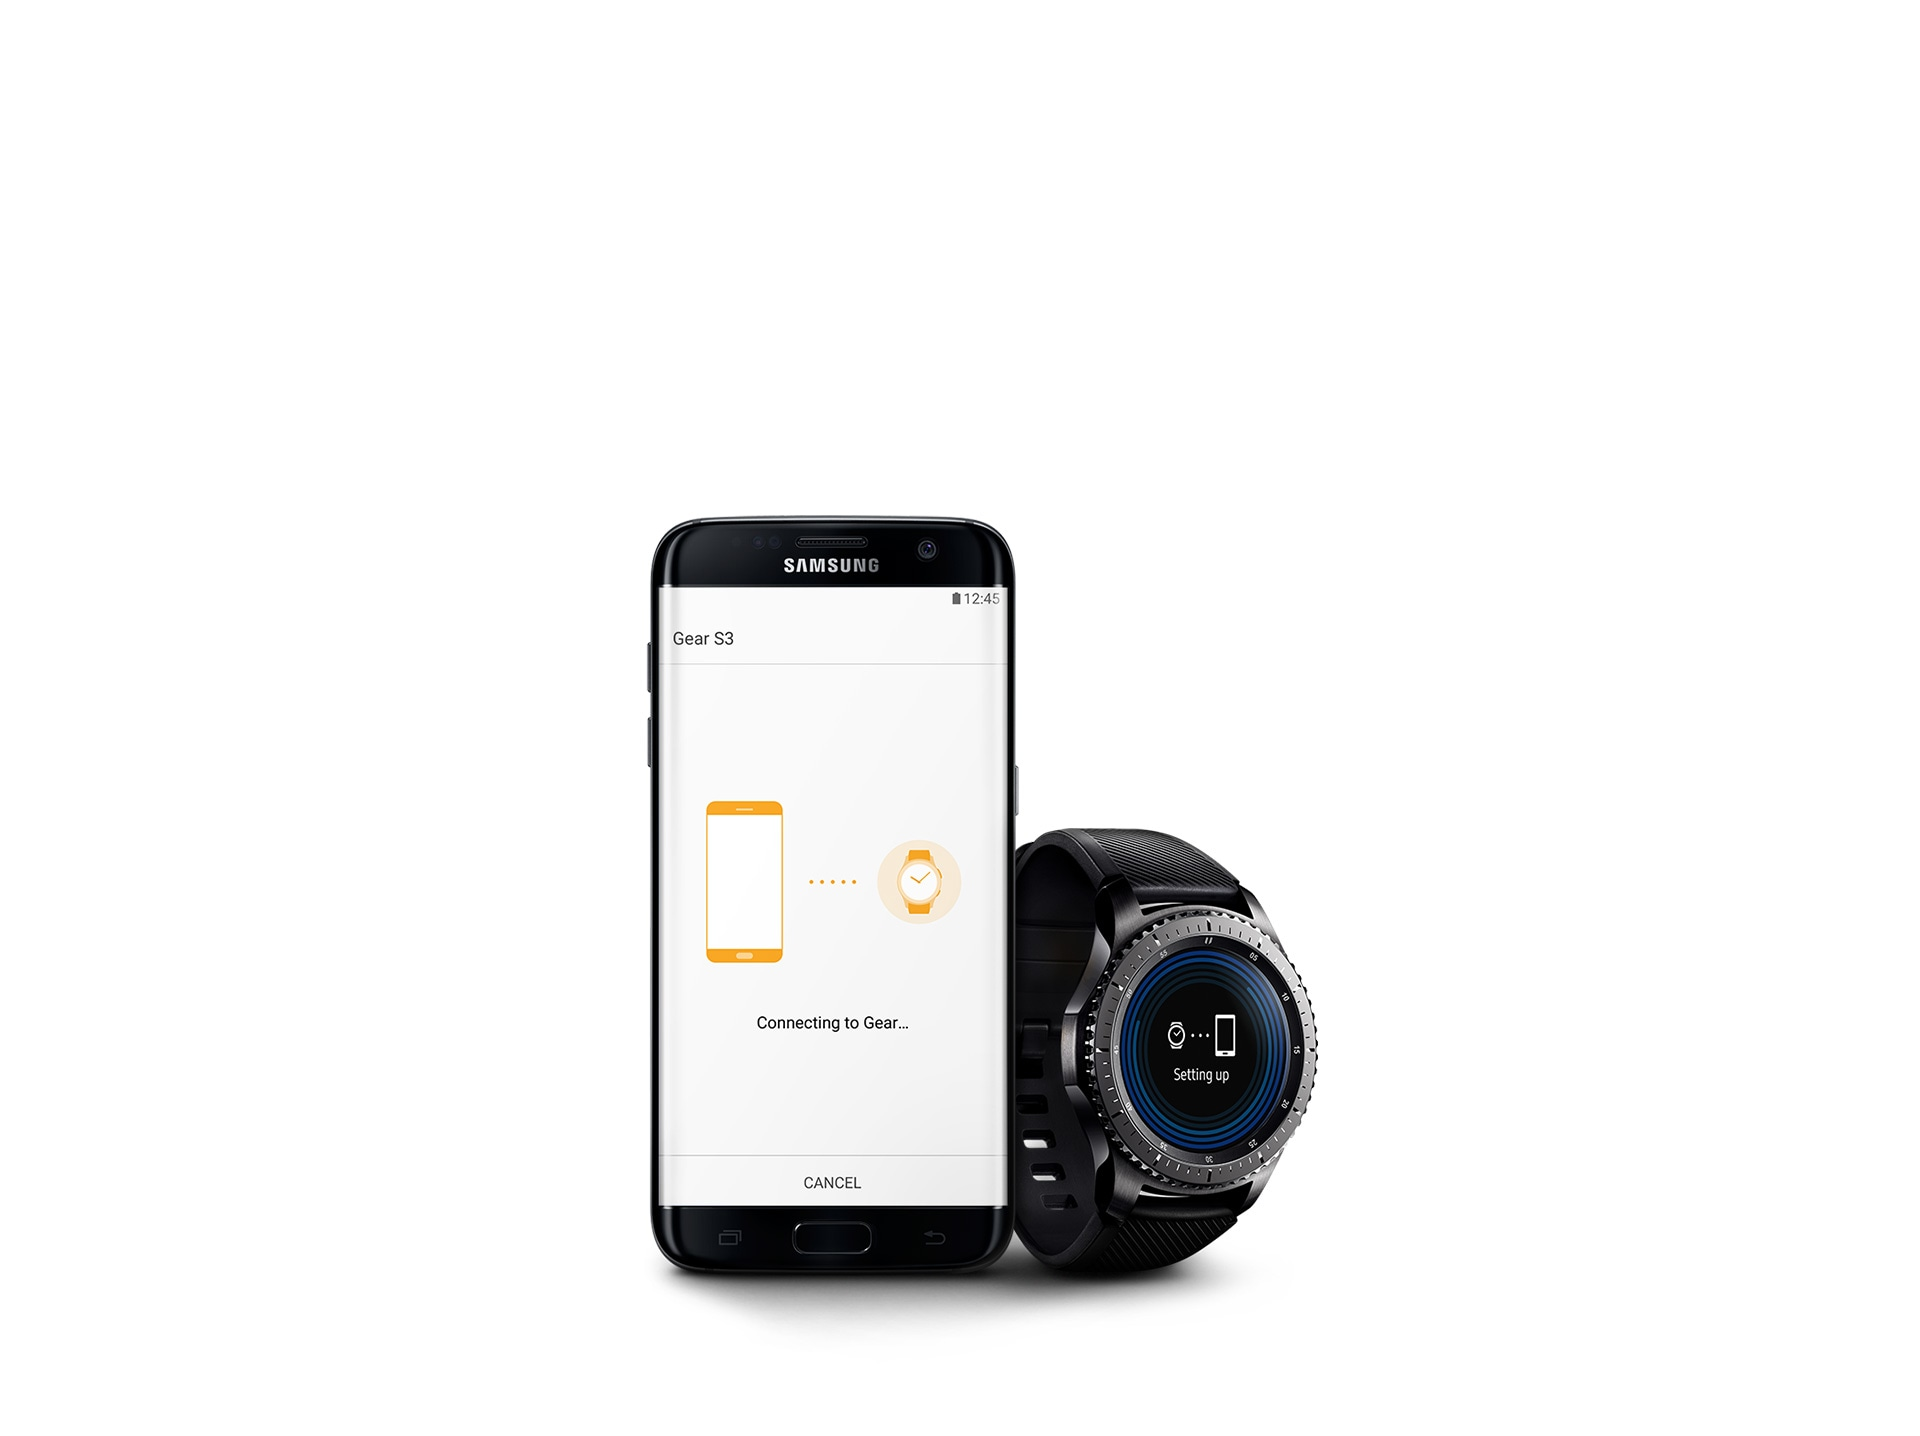 Galaxy S7 edge with Gear S3 in the process of setup